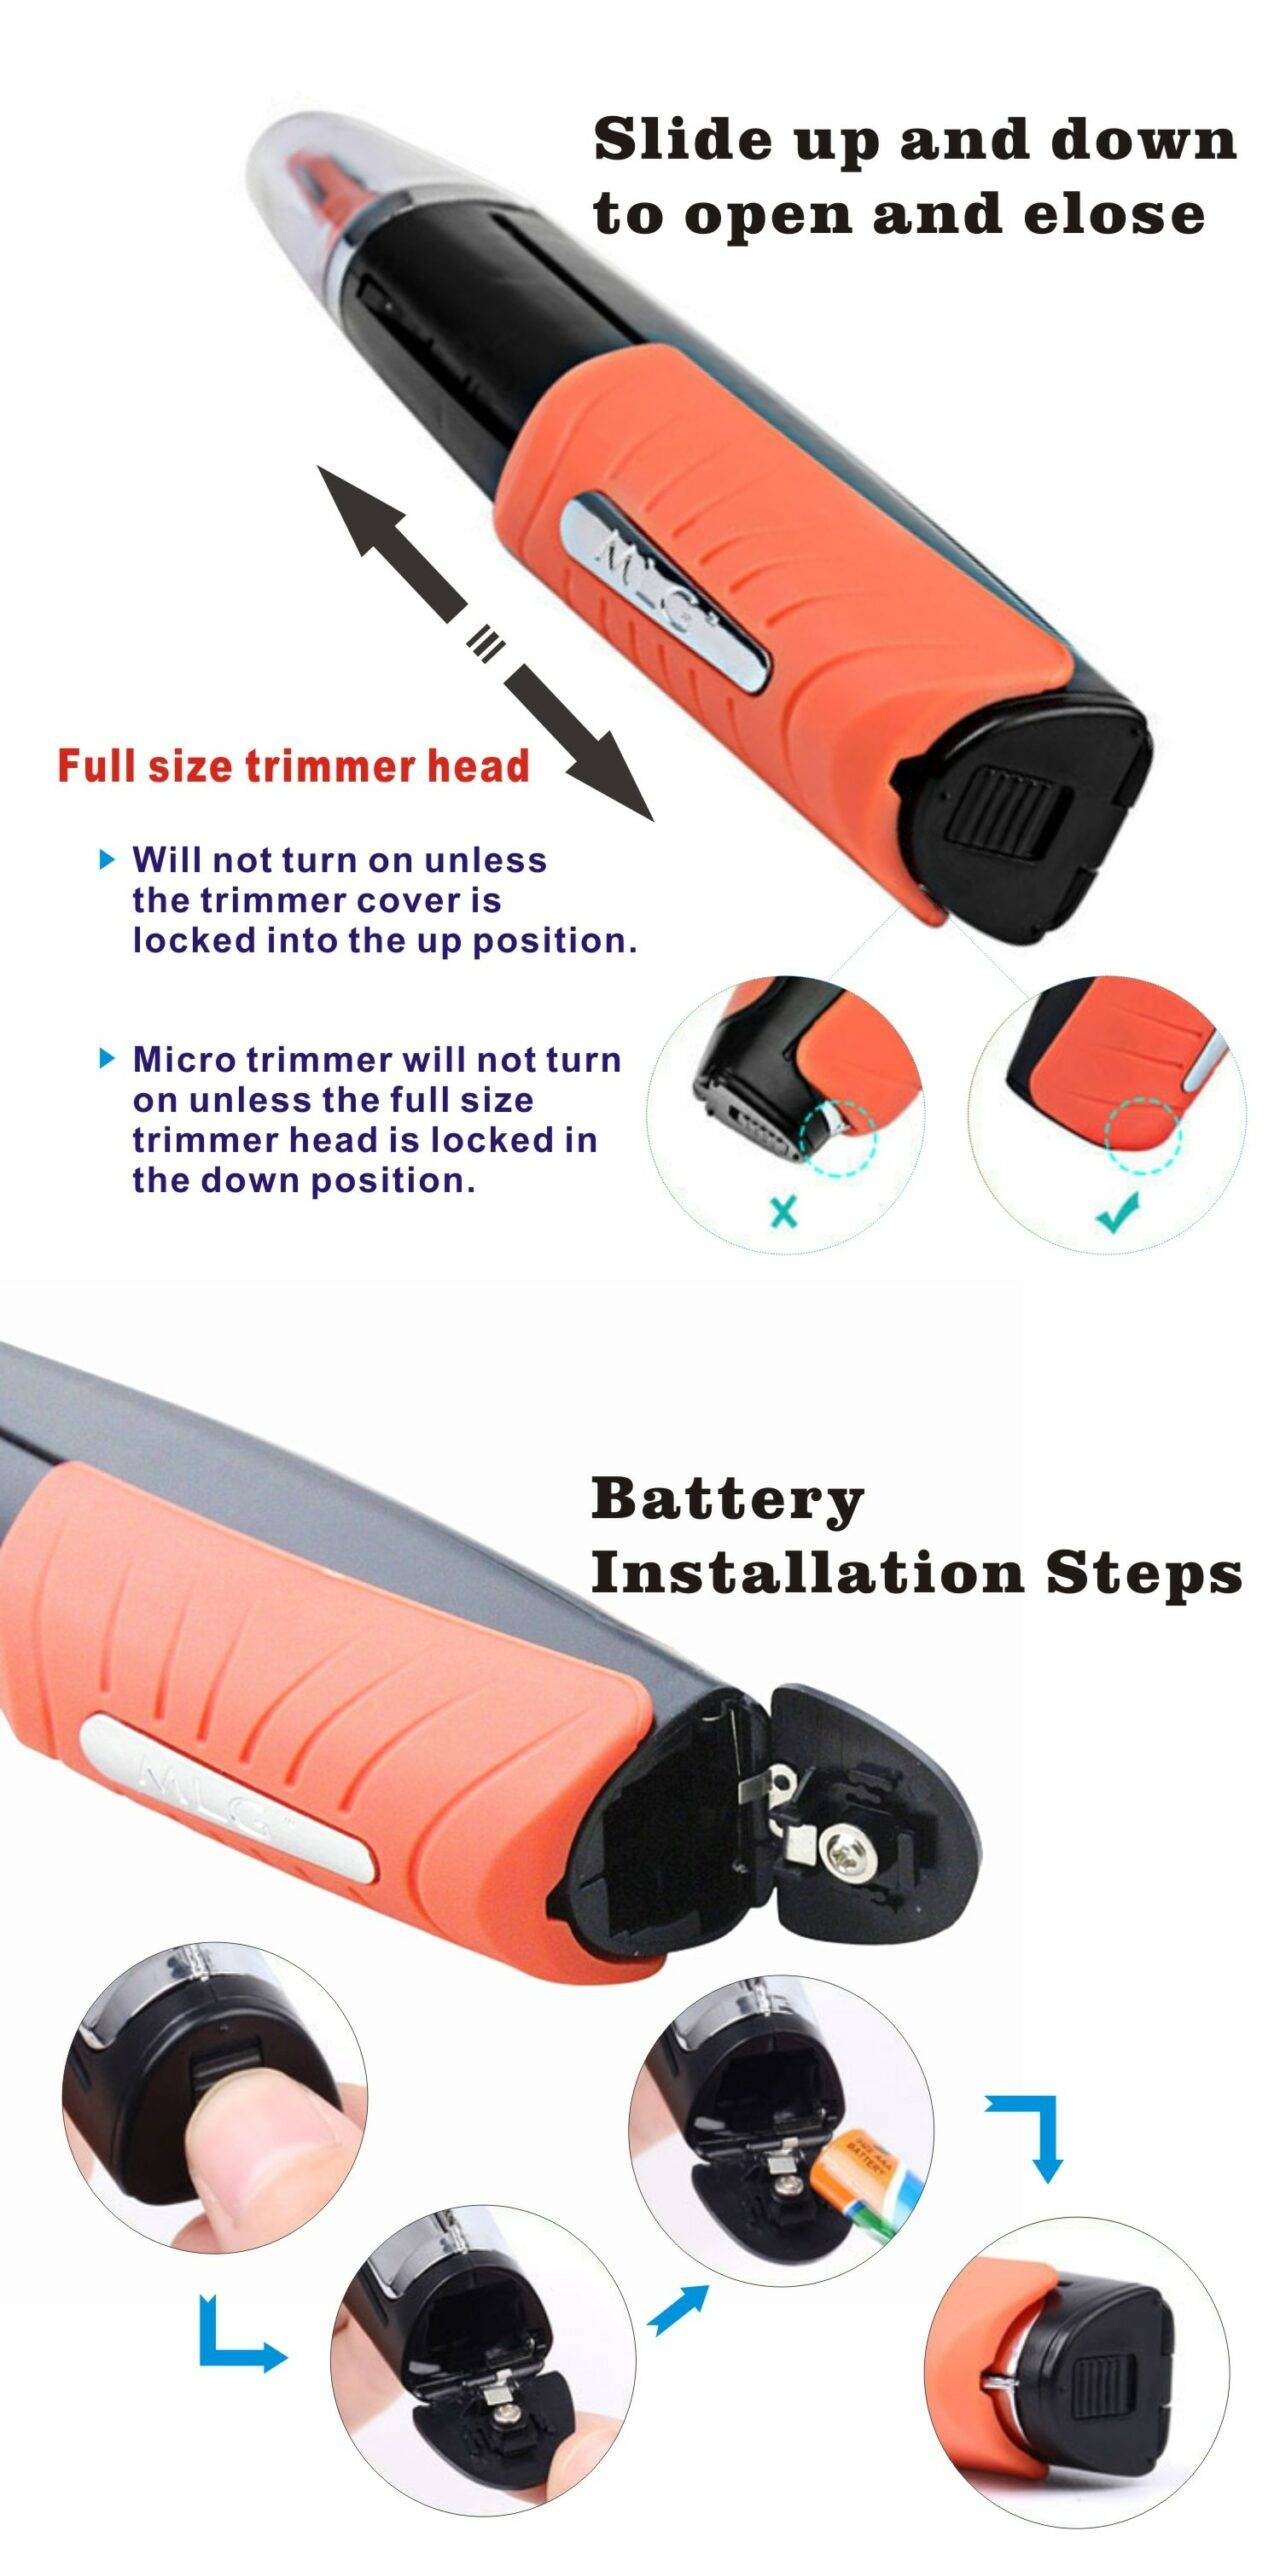 Multi-function Portable Shaver LED Light Beard Trimmer for Eyebrow Hair Body Eyebrow Ear Nose Trimmer Removal Face Care